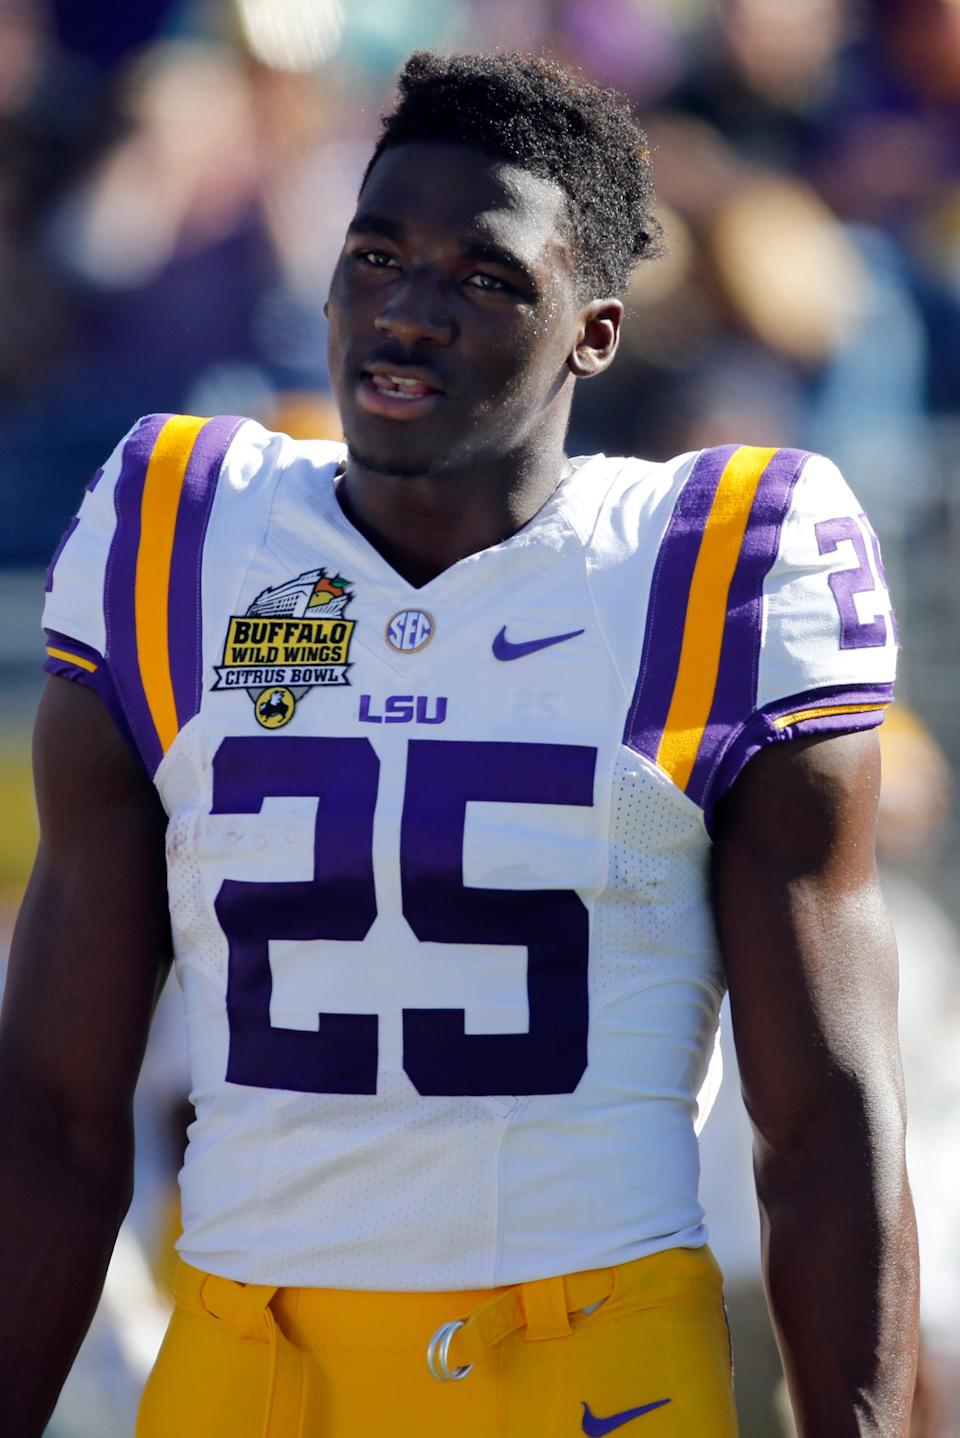 LSU Tigers wide receiver Drake Davis (25) prior to the game at Camping World Stadium on Dec 31, 2016.